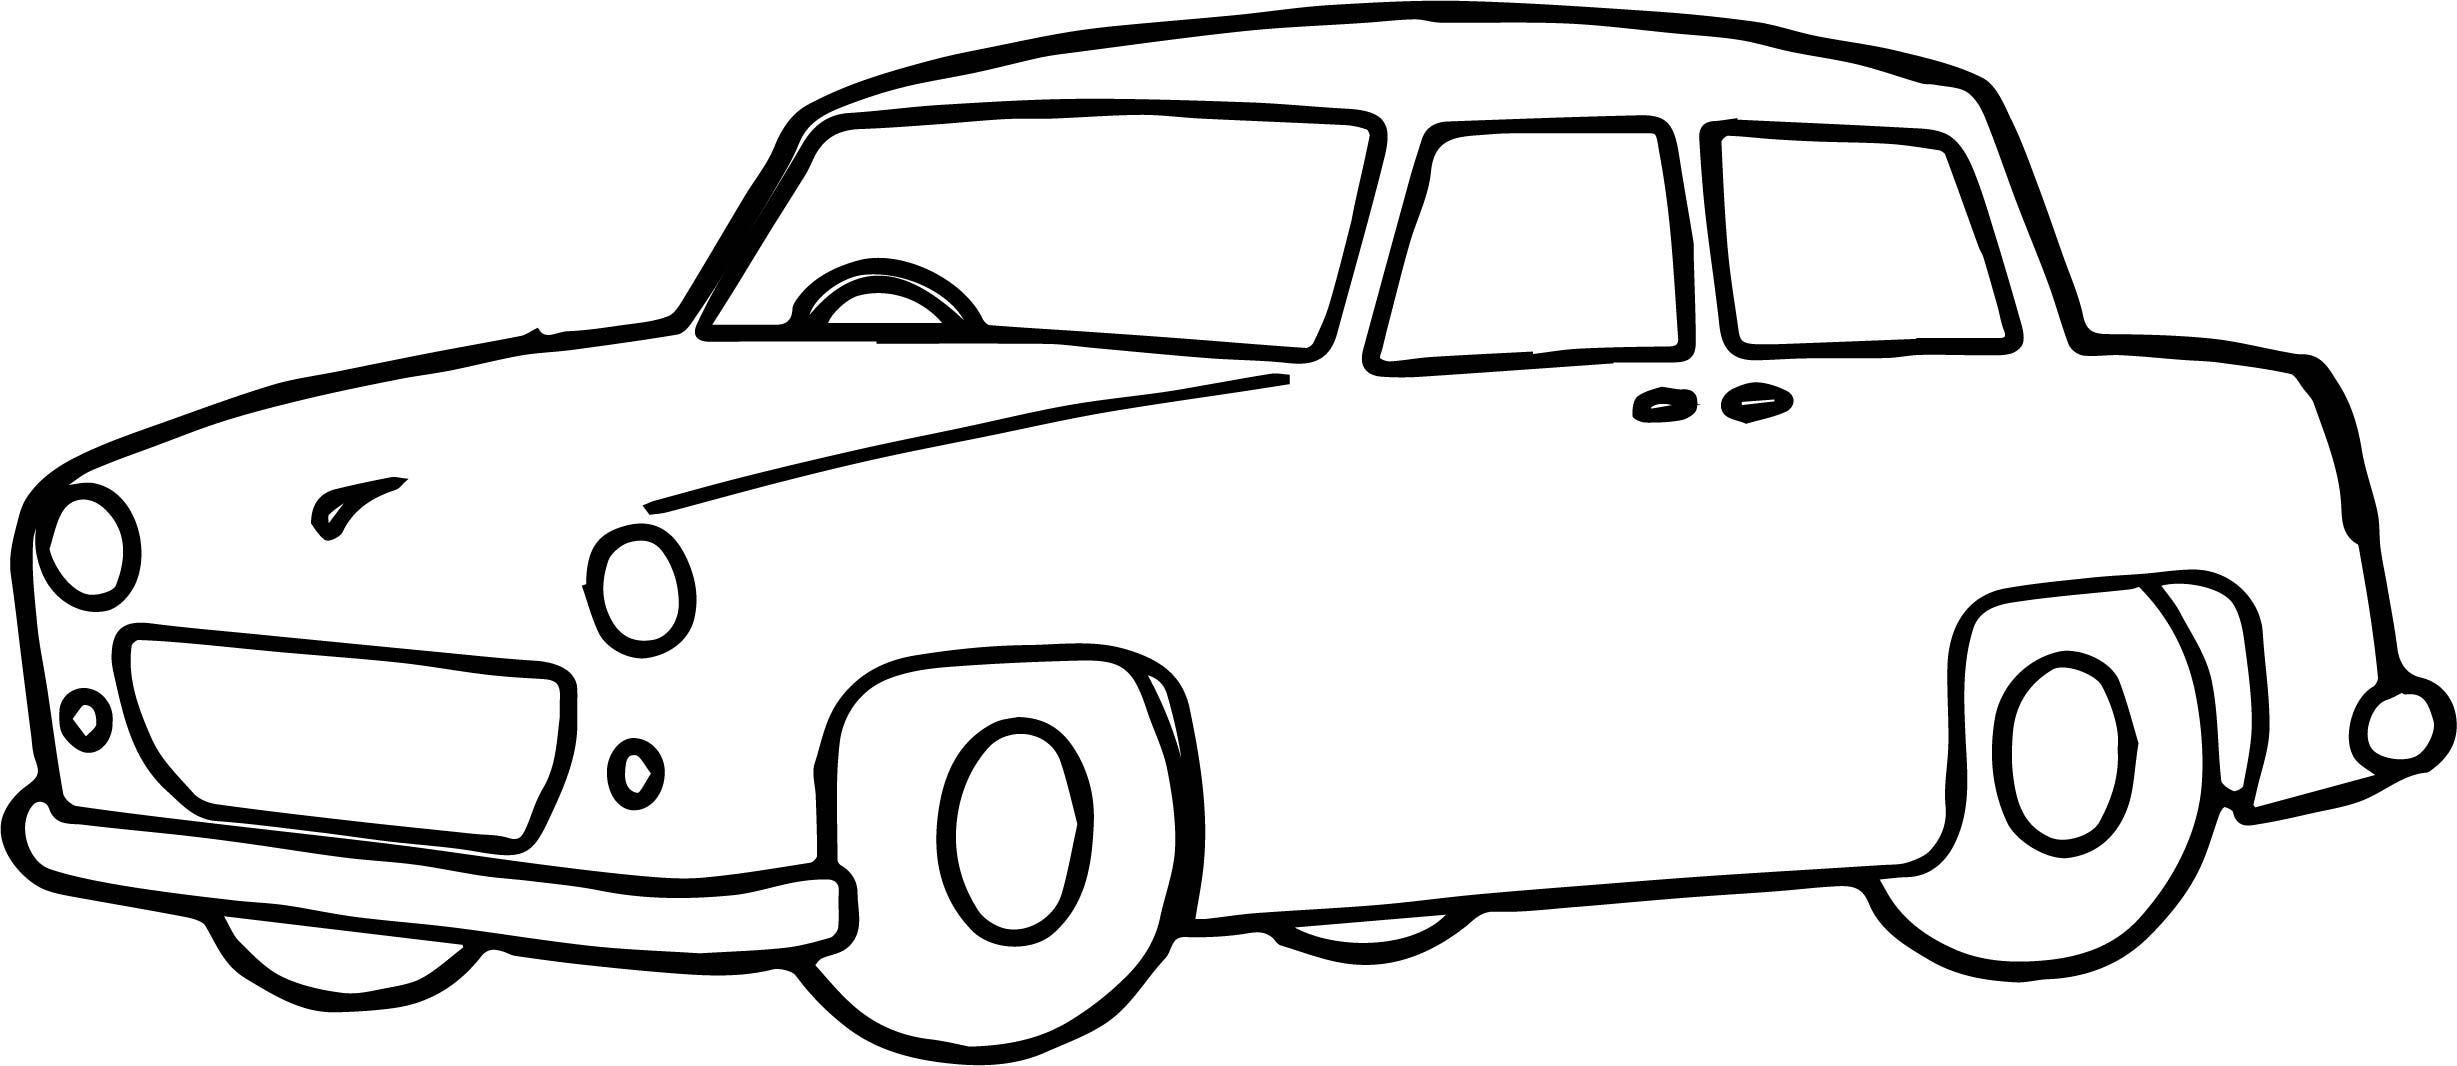 Toy Car Basic Coloring Page